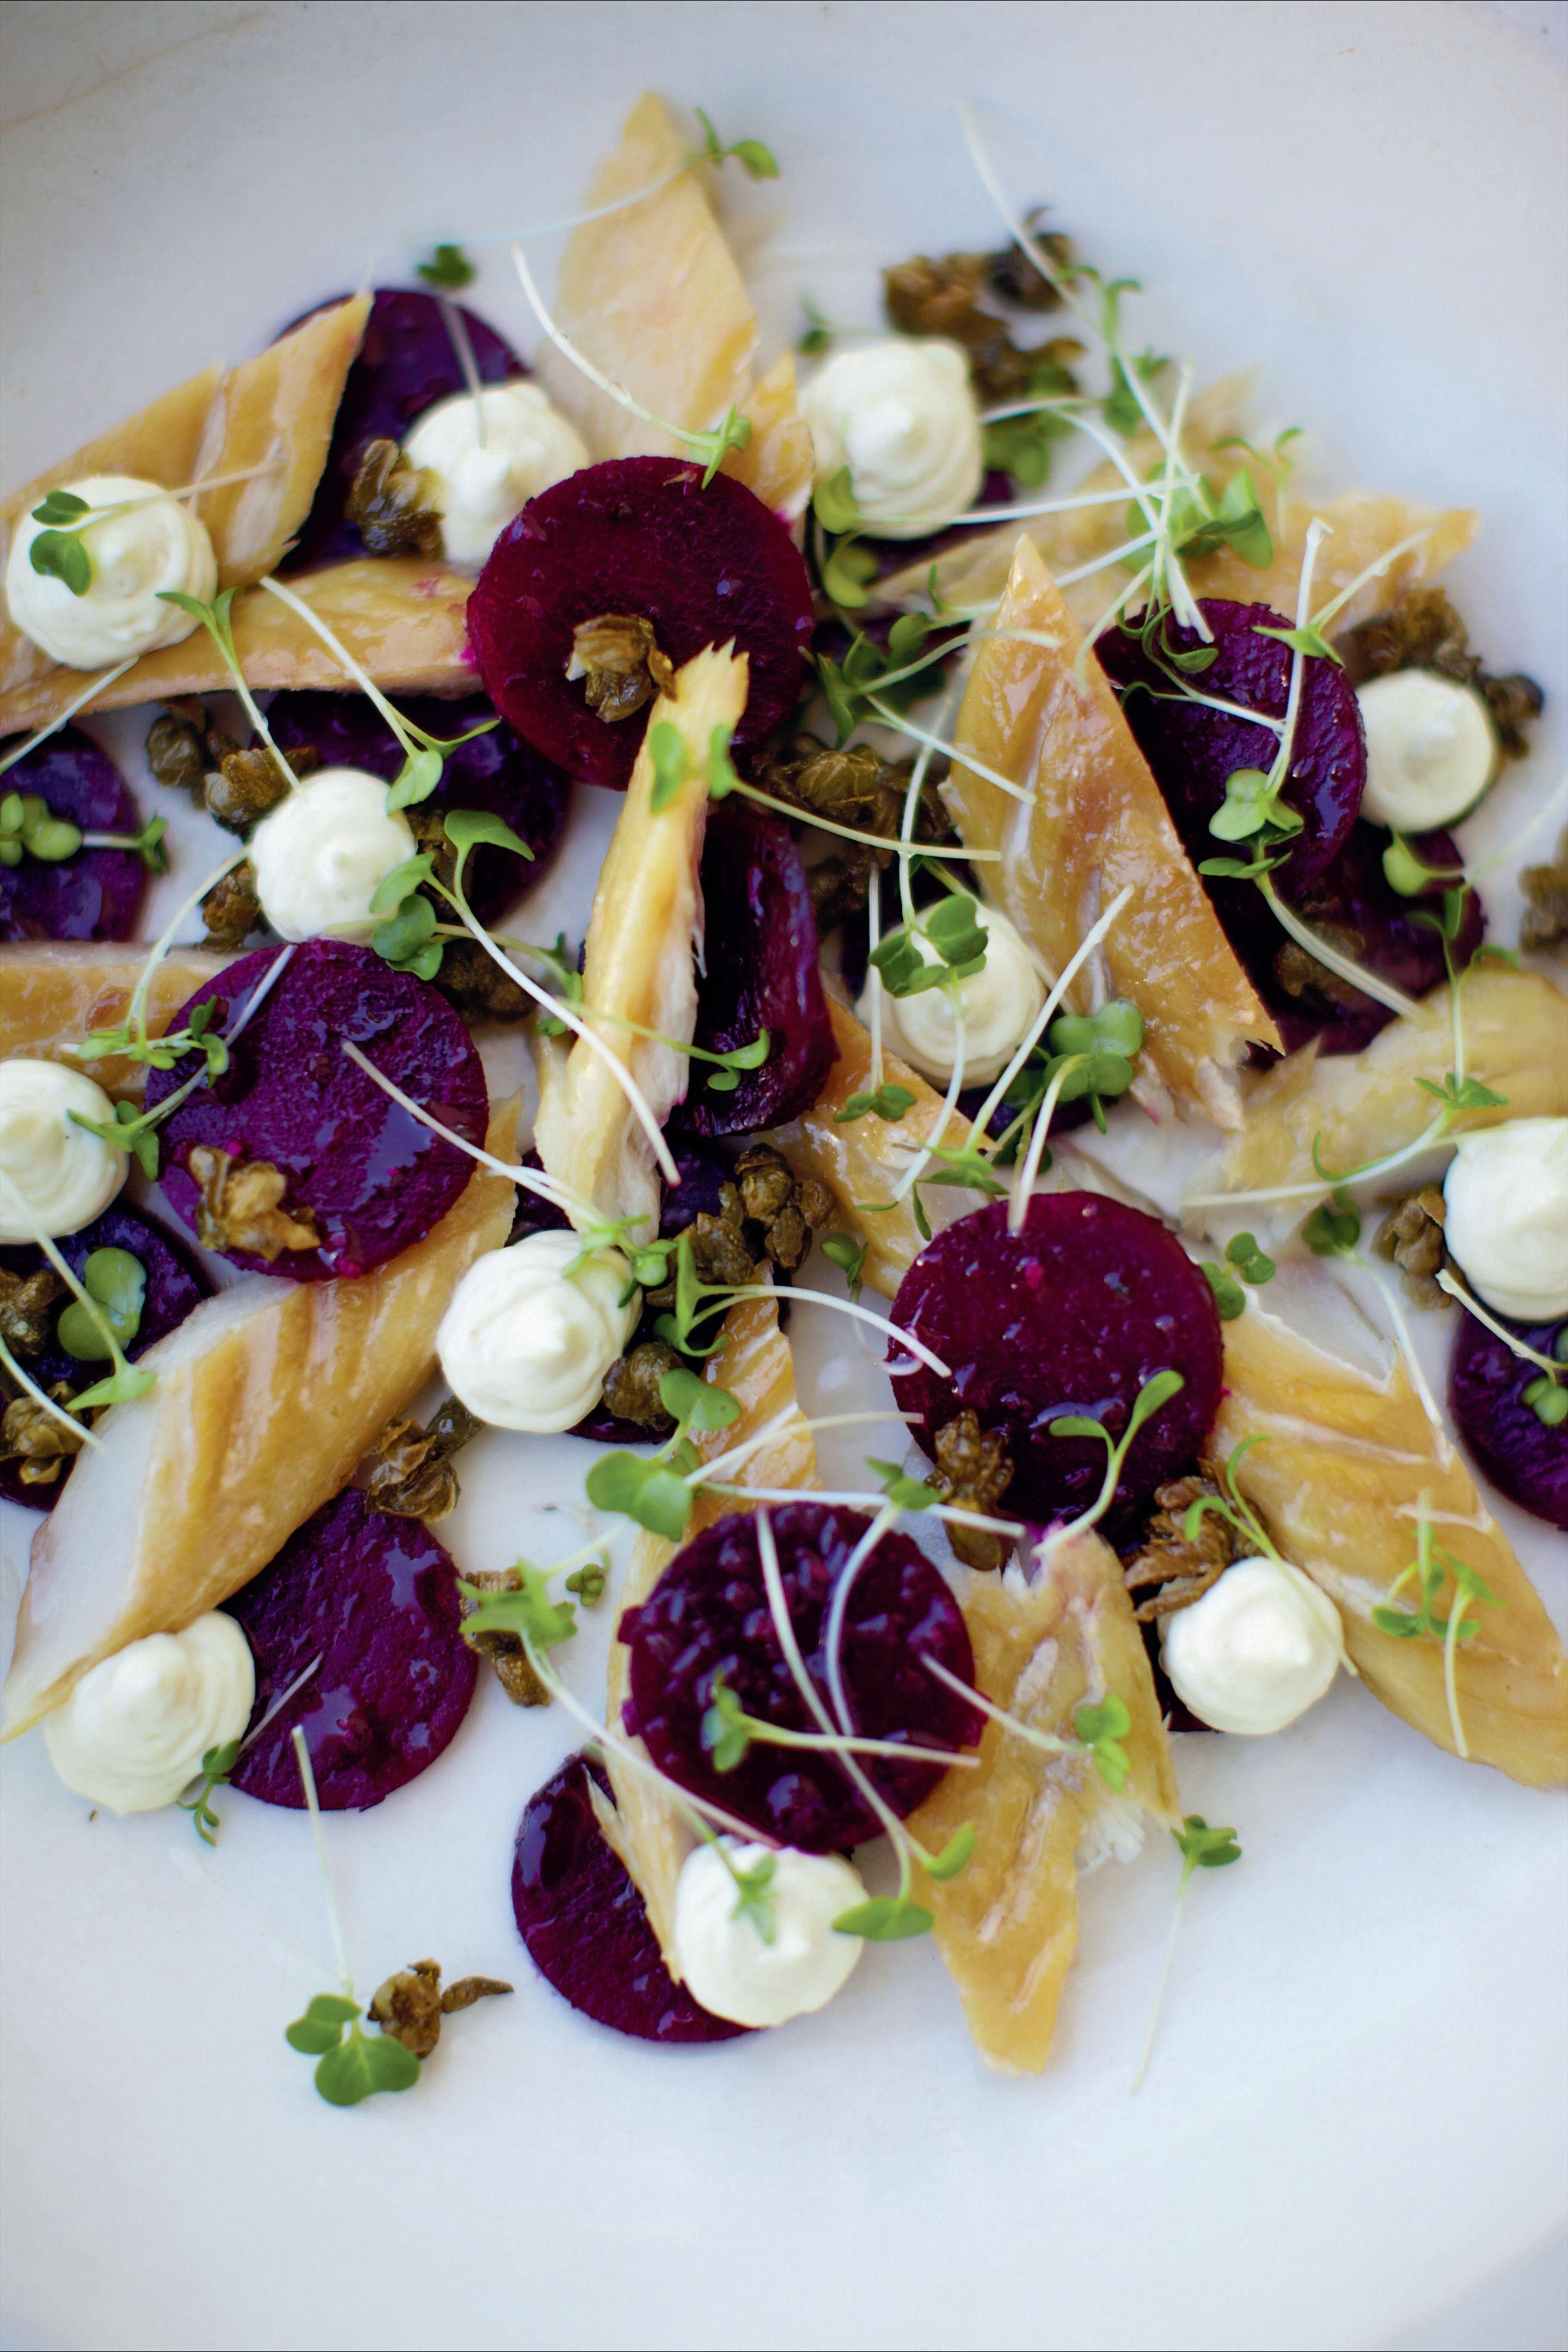 Smoked mackerel and beetroot salad with horseradish mayonnaise